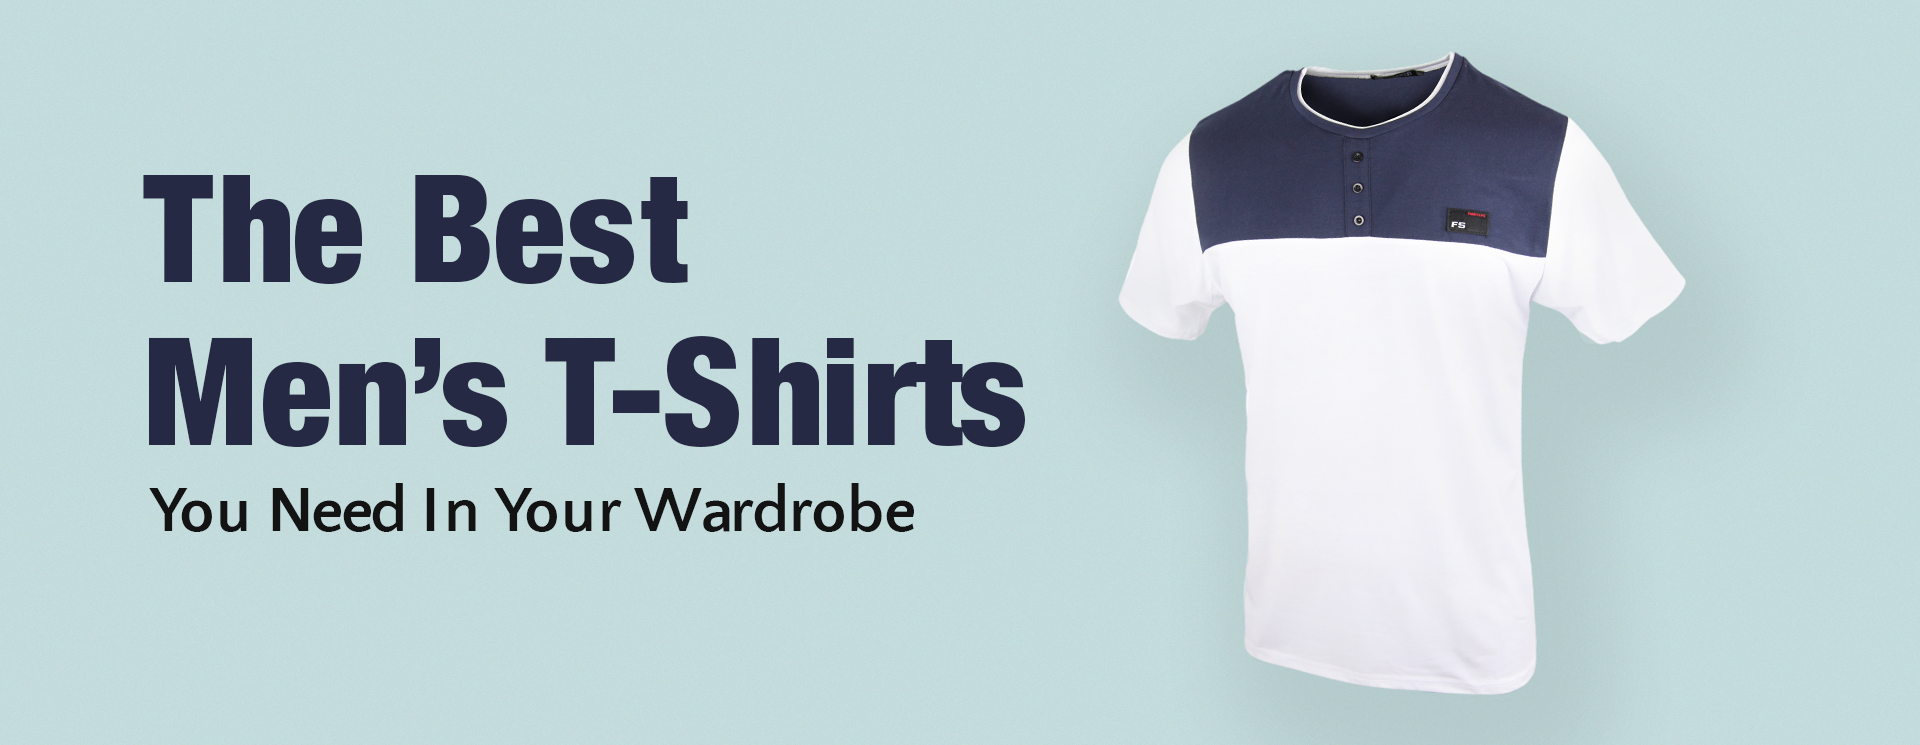 The Best Men's T-Shirts You Need In Your Wardrobe